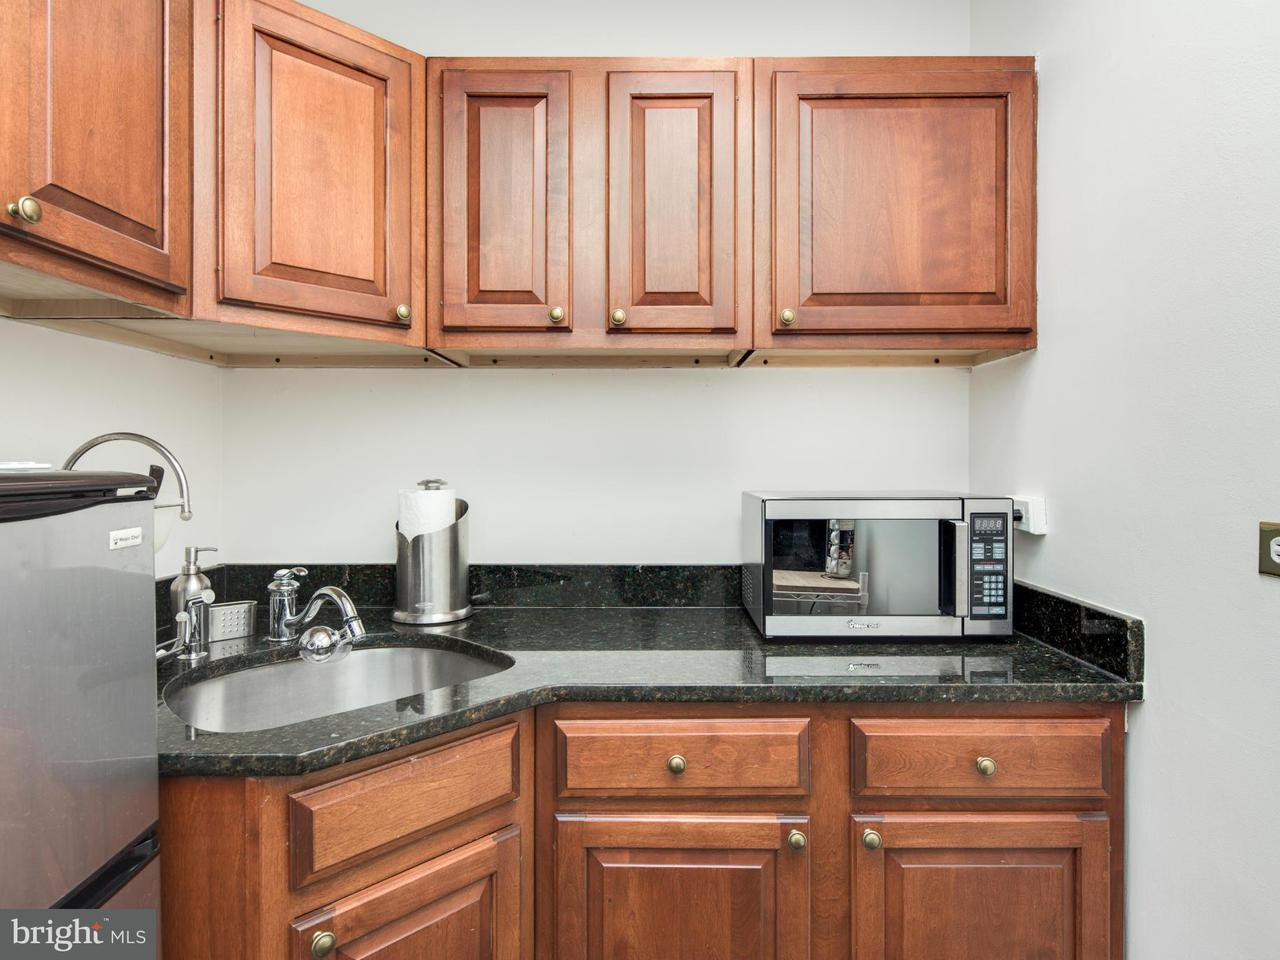 Additional photo for property listing at 730 24TH ST NW #1 730 24TH ST NW #1 Washington, District Of Columbia 20037 Verenigde Staten